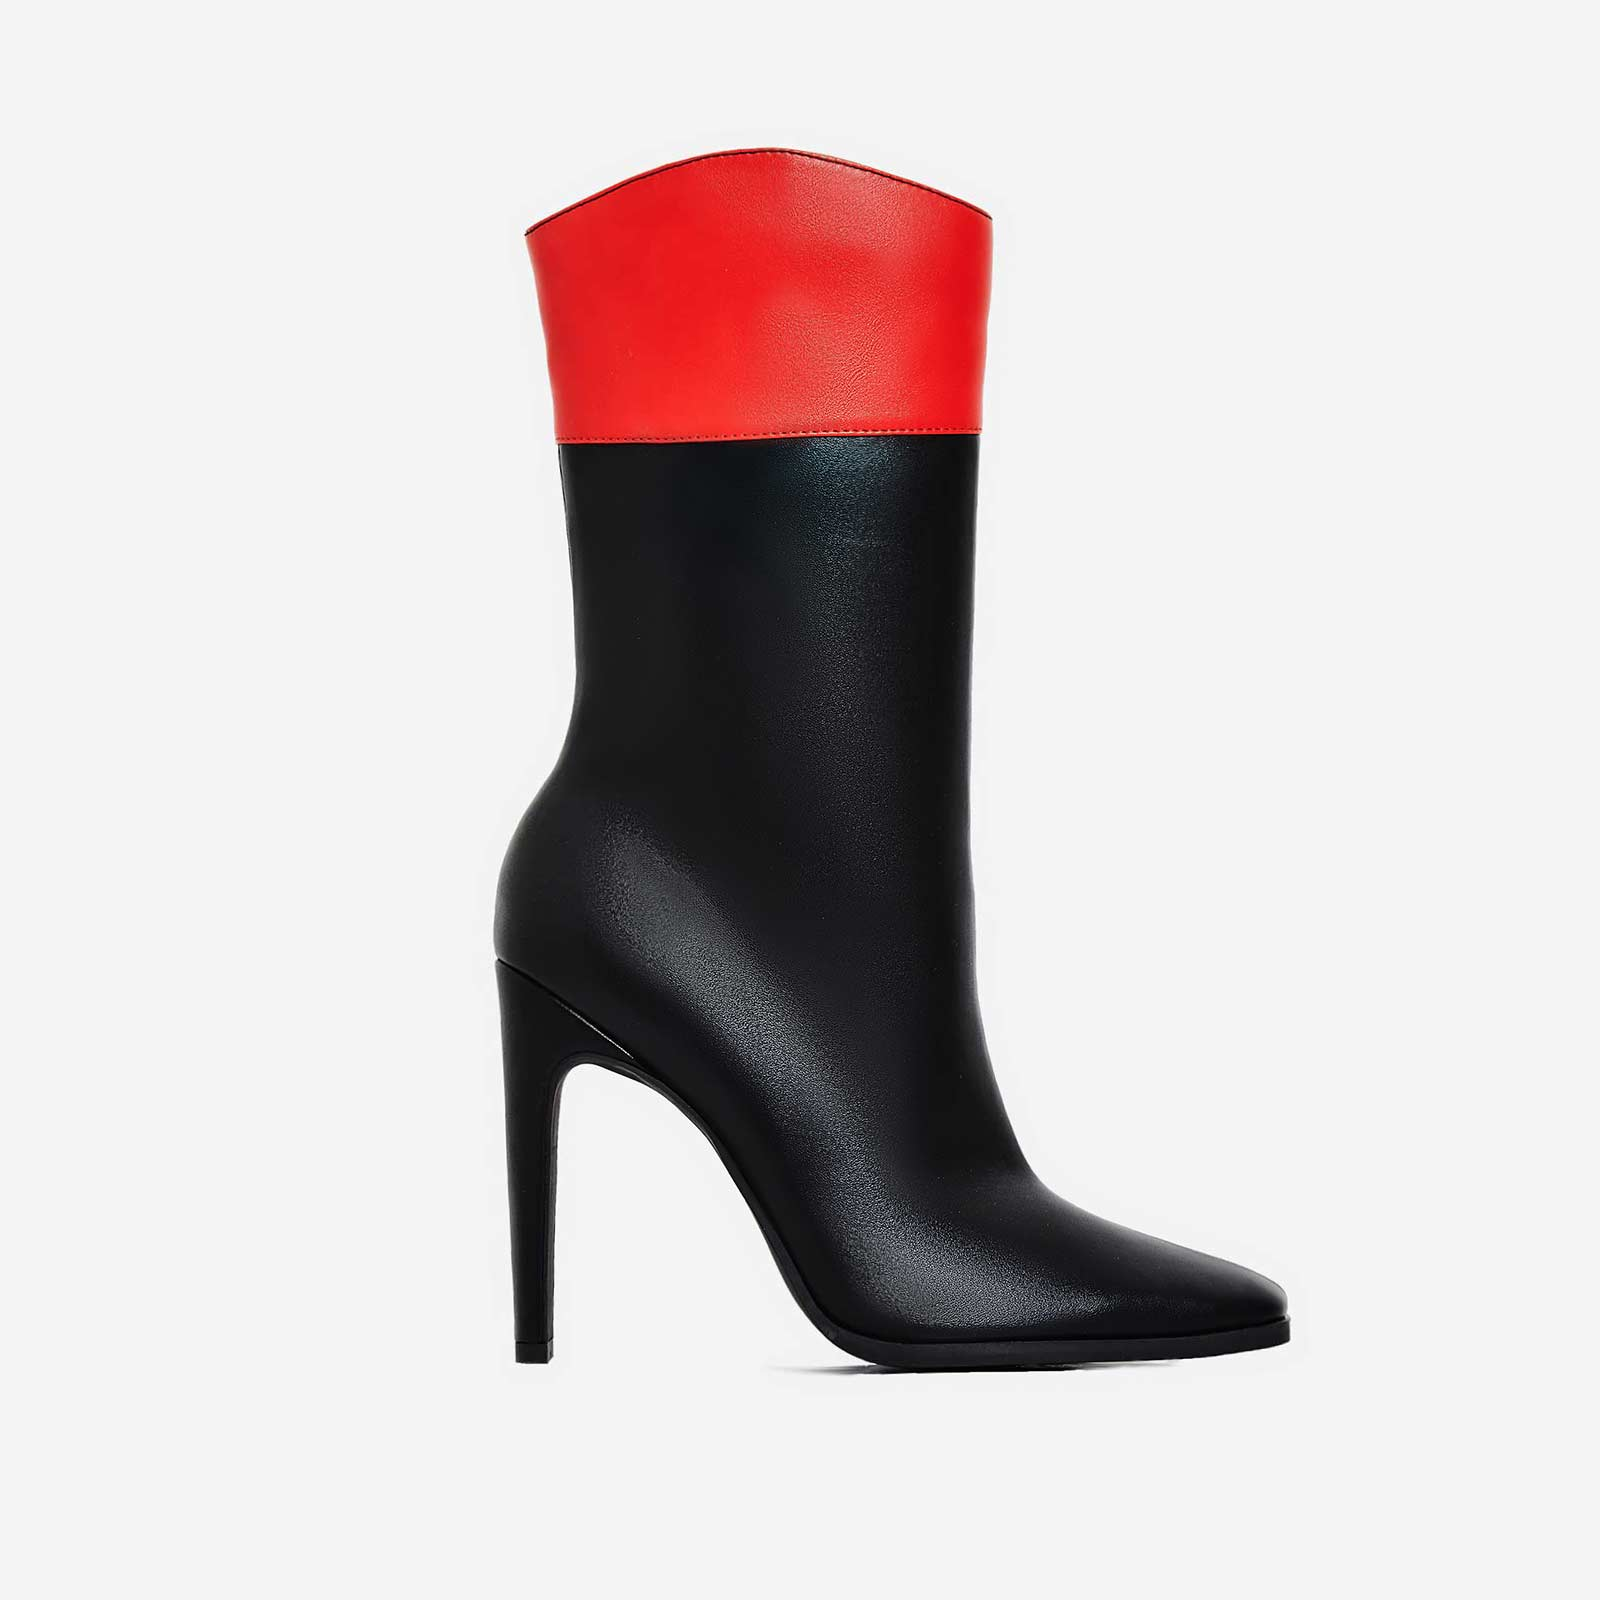 Dolce Flat Heel Ankle Boot In Red And Black Faux Leather